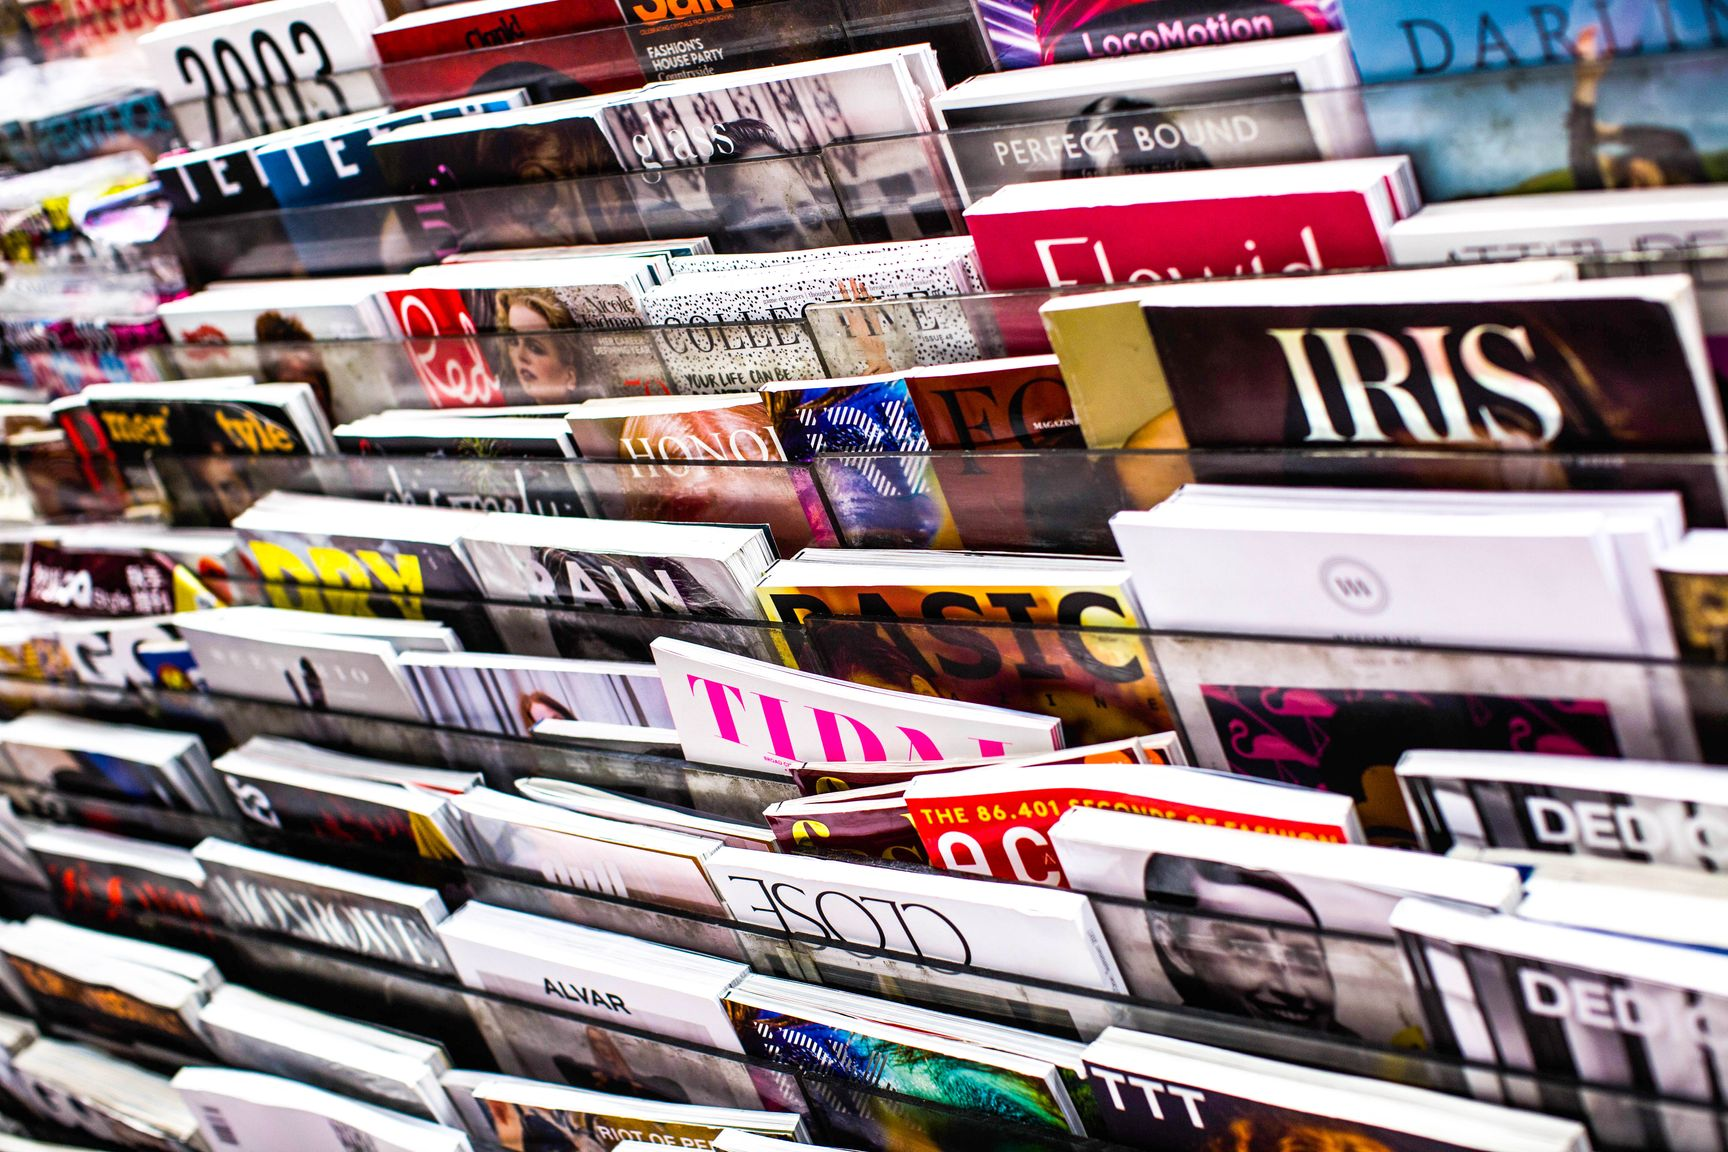 Numerous magazines on a magazine stand